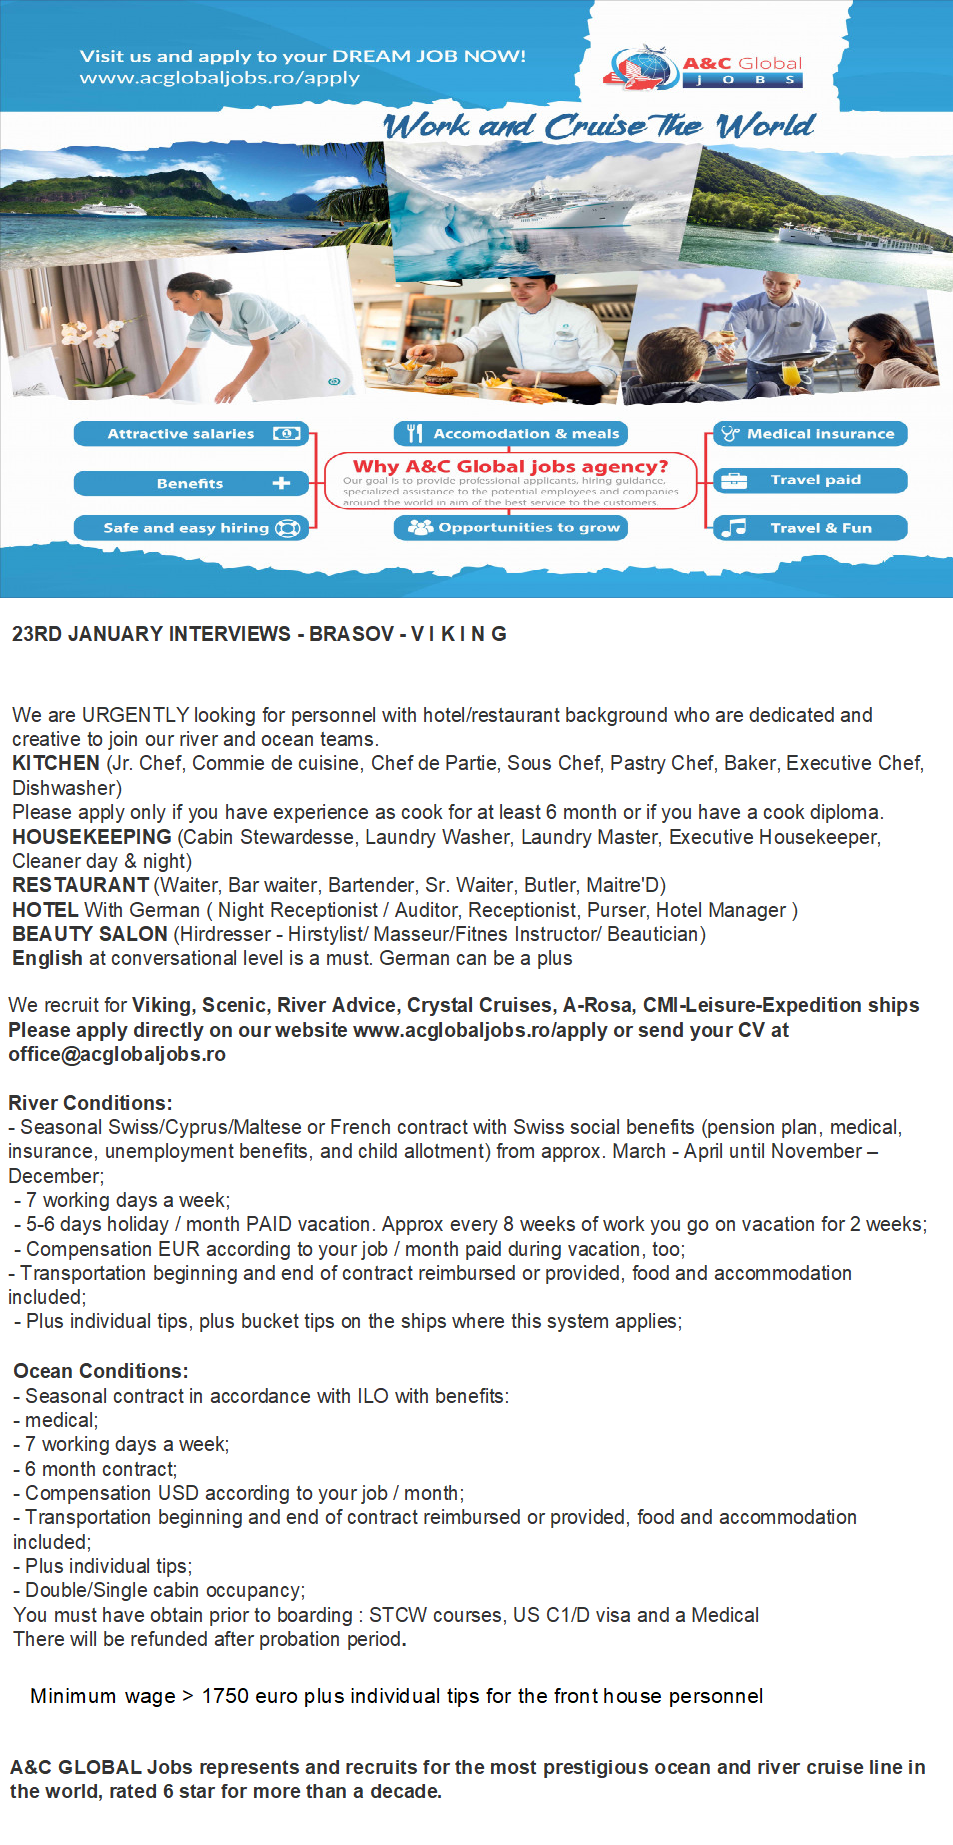 23RD JANUARY INTERVIEWS - BRASOV - VIKING 31ST JANUARY INTERVIEWS - BUCHAREST SCENIC 7TH FEBRUARY INTERVIEWS - BUCHAREST RIVER ADVICE  We are URGENTLY looking for personnel with hotel/restaurant background who are dedicated and creative to join our river and ocean teams. KITCHEN (Jr. Chef, Commie de cuisine, Chef de Partie, Sous Chef, Pastry Chef, Baker, Executive Chef, Dishwasher) Please apply only if you have experience as cook for at least 6 month or if you have a cook diploma. HOUSEKEEPING (Cabin Stewardesse, Laundry Washer, Laundry Master, Executive Housekeeper, Cleaner day & night) RESTAURANT (Waiter, Bar waiter, Bartender, Sr. Waiter, Butler, Maitre'D) HOTEL With German ( Night Receptionist / Auditor, Receptionist, Purser, Hotel Manager ) BEAUTY SALON (Hirdresser - Hirstylist/ Masseur/Fitnes Instructor/ Beautician) English at conversational level is a must.   We recruit for Viking, Scenic, River Advice, Crystal Cruises, A-Rosa, CMI-Leisure-Expedition ships Please apply directly on our website www.acglobaljobs.ro/apply or send your CV at office@acglobaljobs.ro River Conditions -Seasonal Swiss/Cyprus/Maltese or French contract with Swiss social benefits (pension plan, medical, insurance, unemployment benefits, and child allotment) from approx. March - April until November - December - 7 working days a week - 5-6 days holiday / month PAID vacation. Approx every 8 weeks of work you go on vacation for 2 weeks. - Compensation EUR according to your job / month paid during vacation, too - Transportation beginning and end of contract reimbursed or provided, food and accommodation included. - Plus individual tips, plus bucket tips on the ships where this system applies - Double cabin occupancy We are URGENTLY looking for personnel with hotel/restaurant background who are dedicated and creative to join our river and ocean teams.  We recruit for Viking, Scenic, River Advice, Crystal Cruises, A-Rosa, CMI-Leisure-Expedition ships Please apply directly on our website www.ac